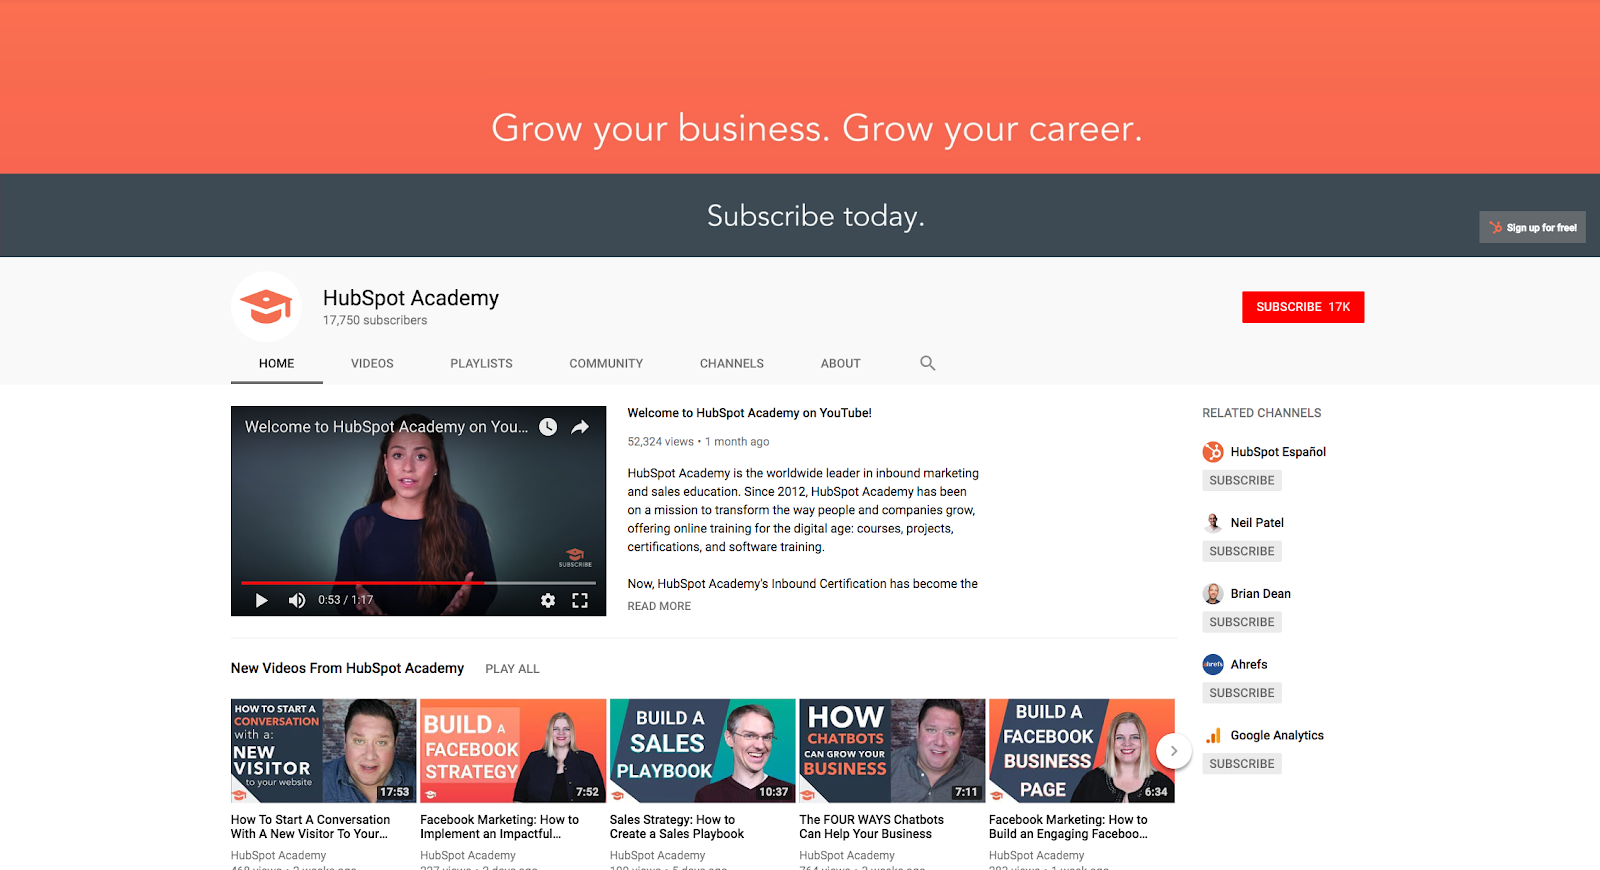 How to Measure and Optimize Your YouTube Channel in HubSpot